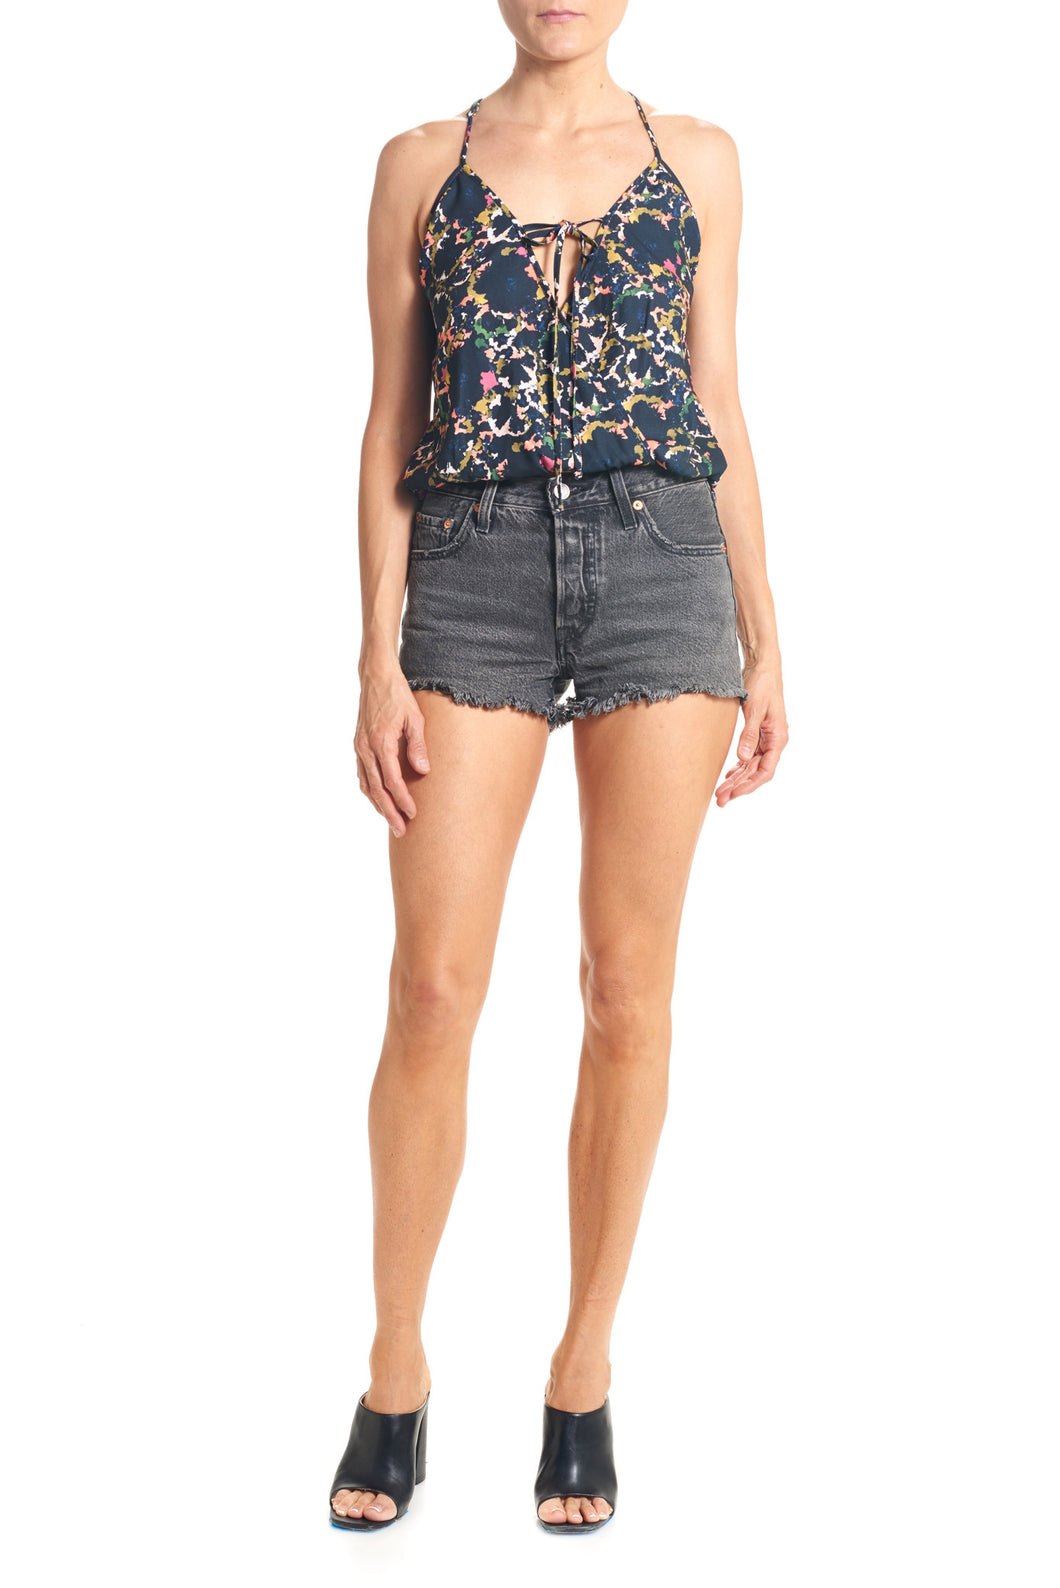 LILY TIE FRONT TANK - RETRO FLORAL - Thieves Like Us Collection